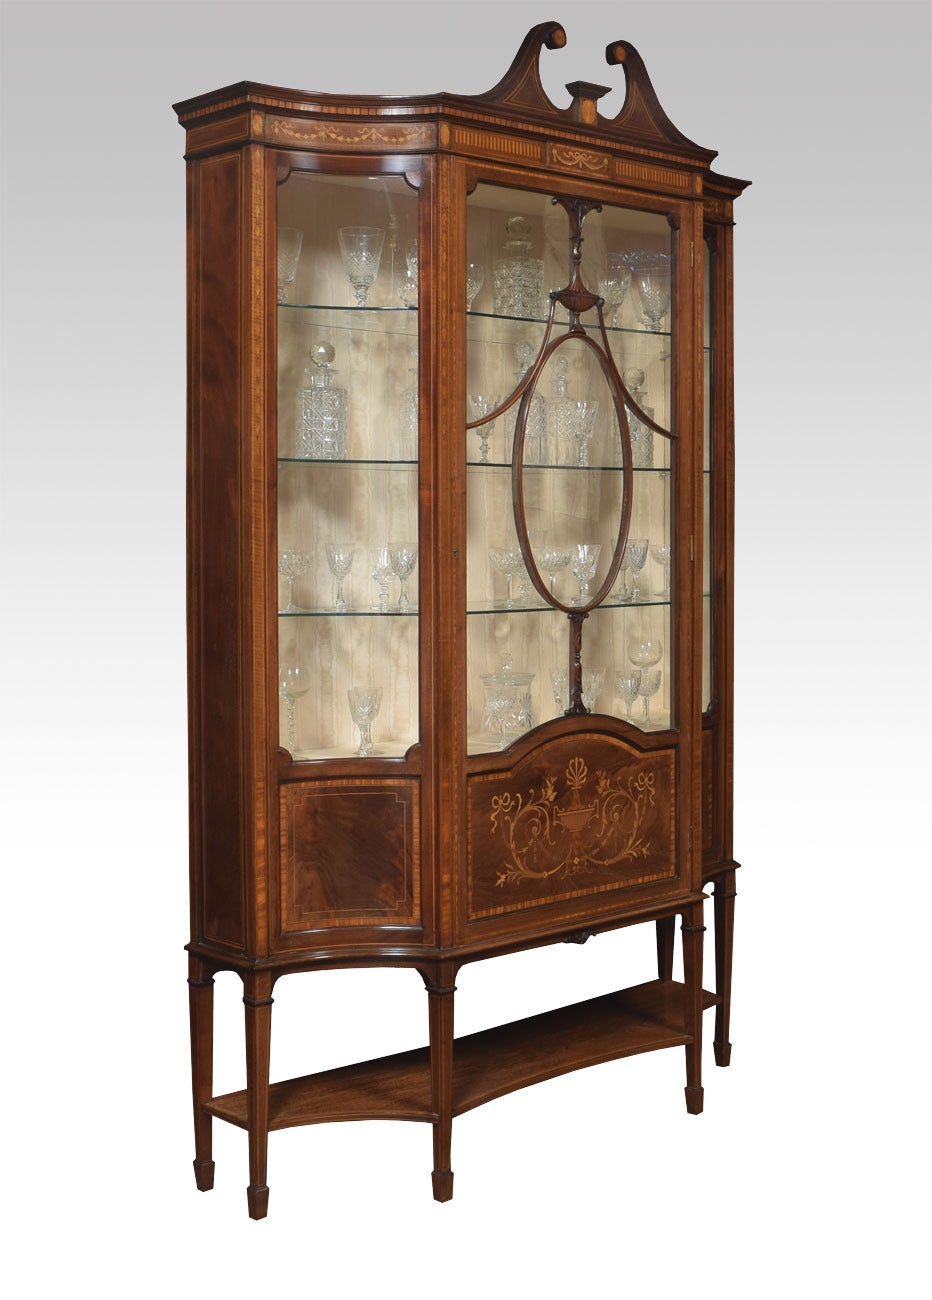 Late 19th Century Mahogany Sheraton Revival Inlaid Display Cabinet 2